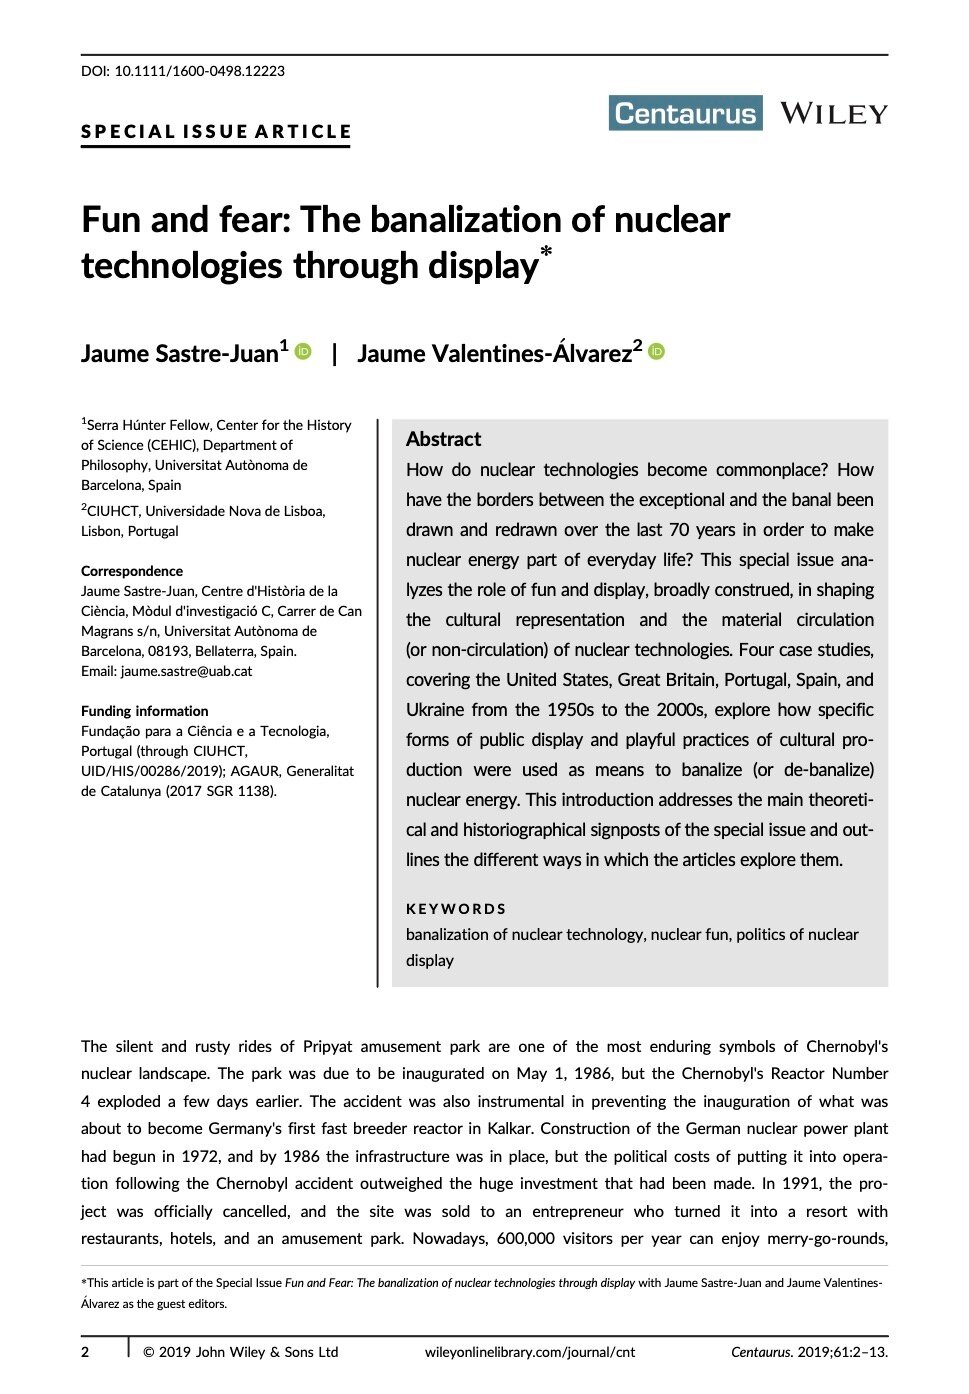 Fun and fear: The banalization of nuclear technologies through display, Capa